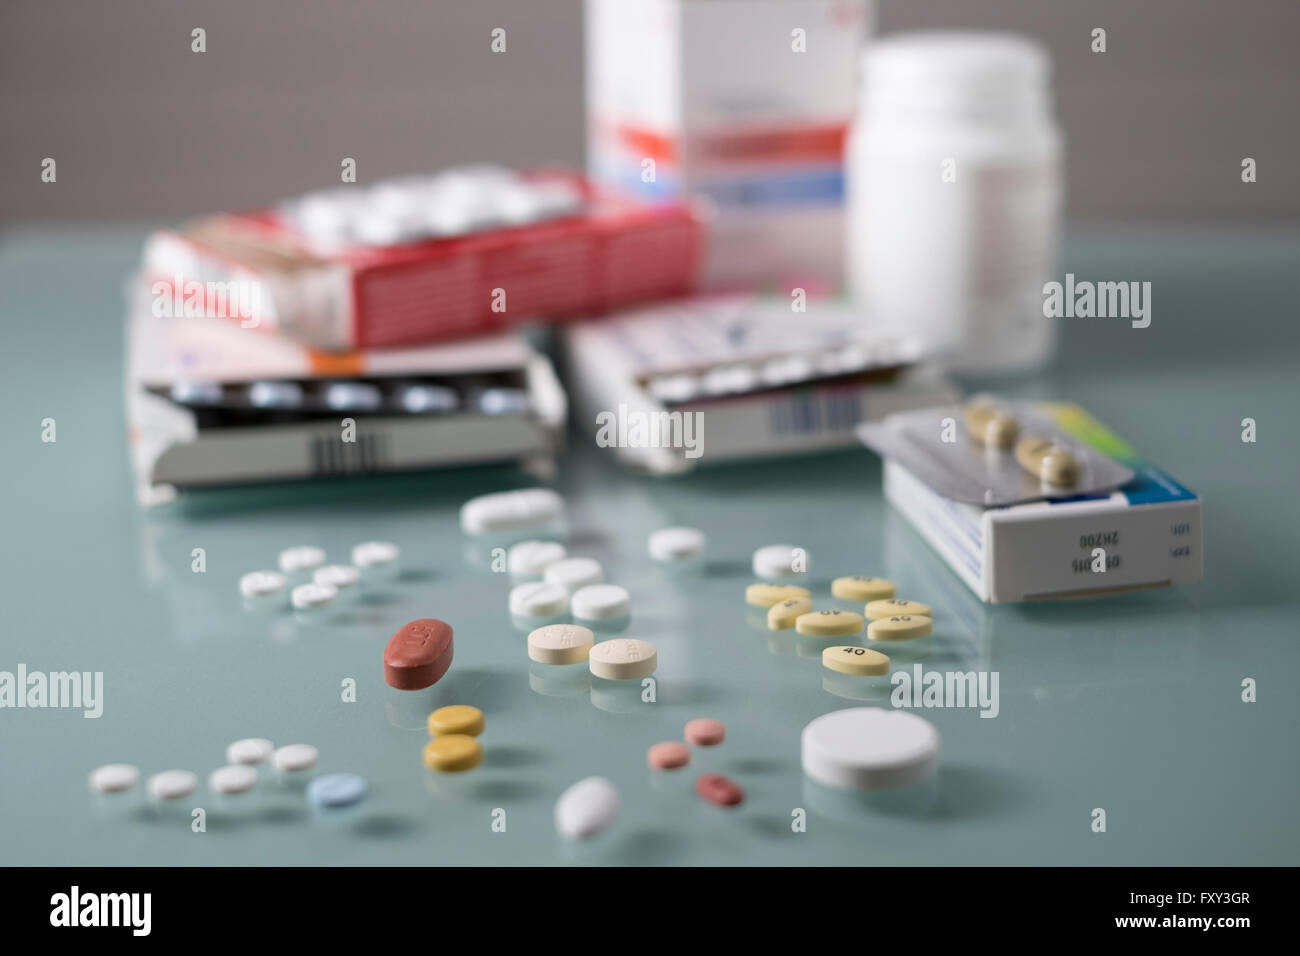 Pills and Packaging horizontal and slightly darker - Stock Image